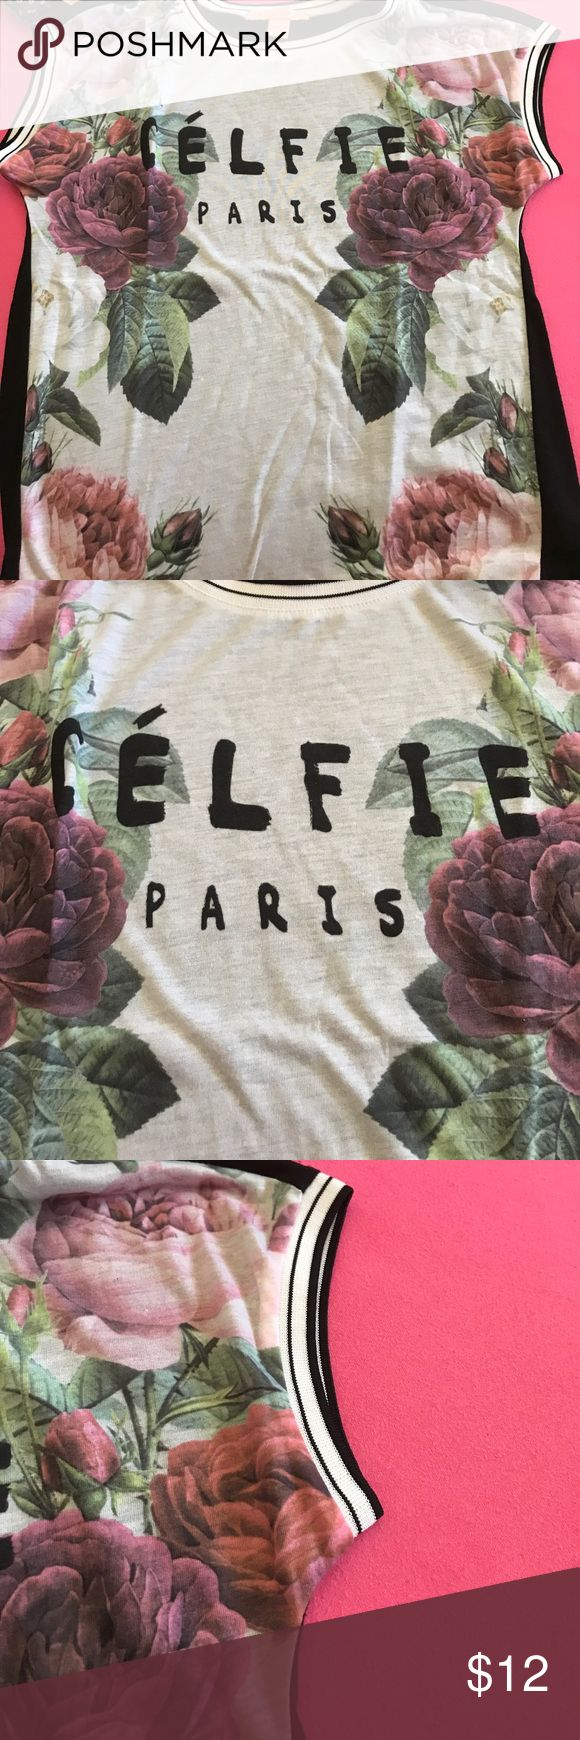 Celfie shirt Almost new! No stains or rips! Can fit small to medium. With floral design Tops Blouses